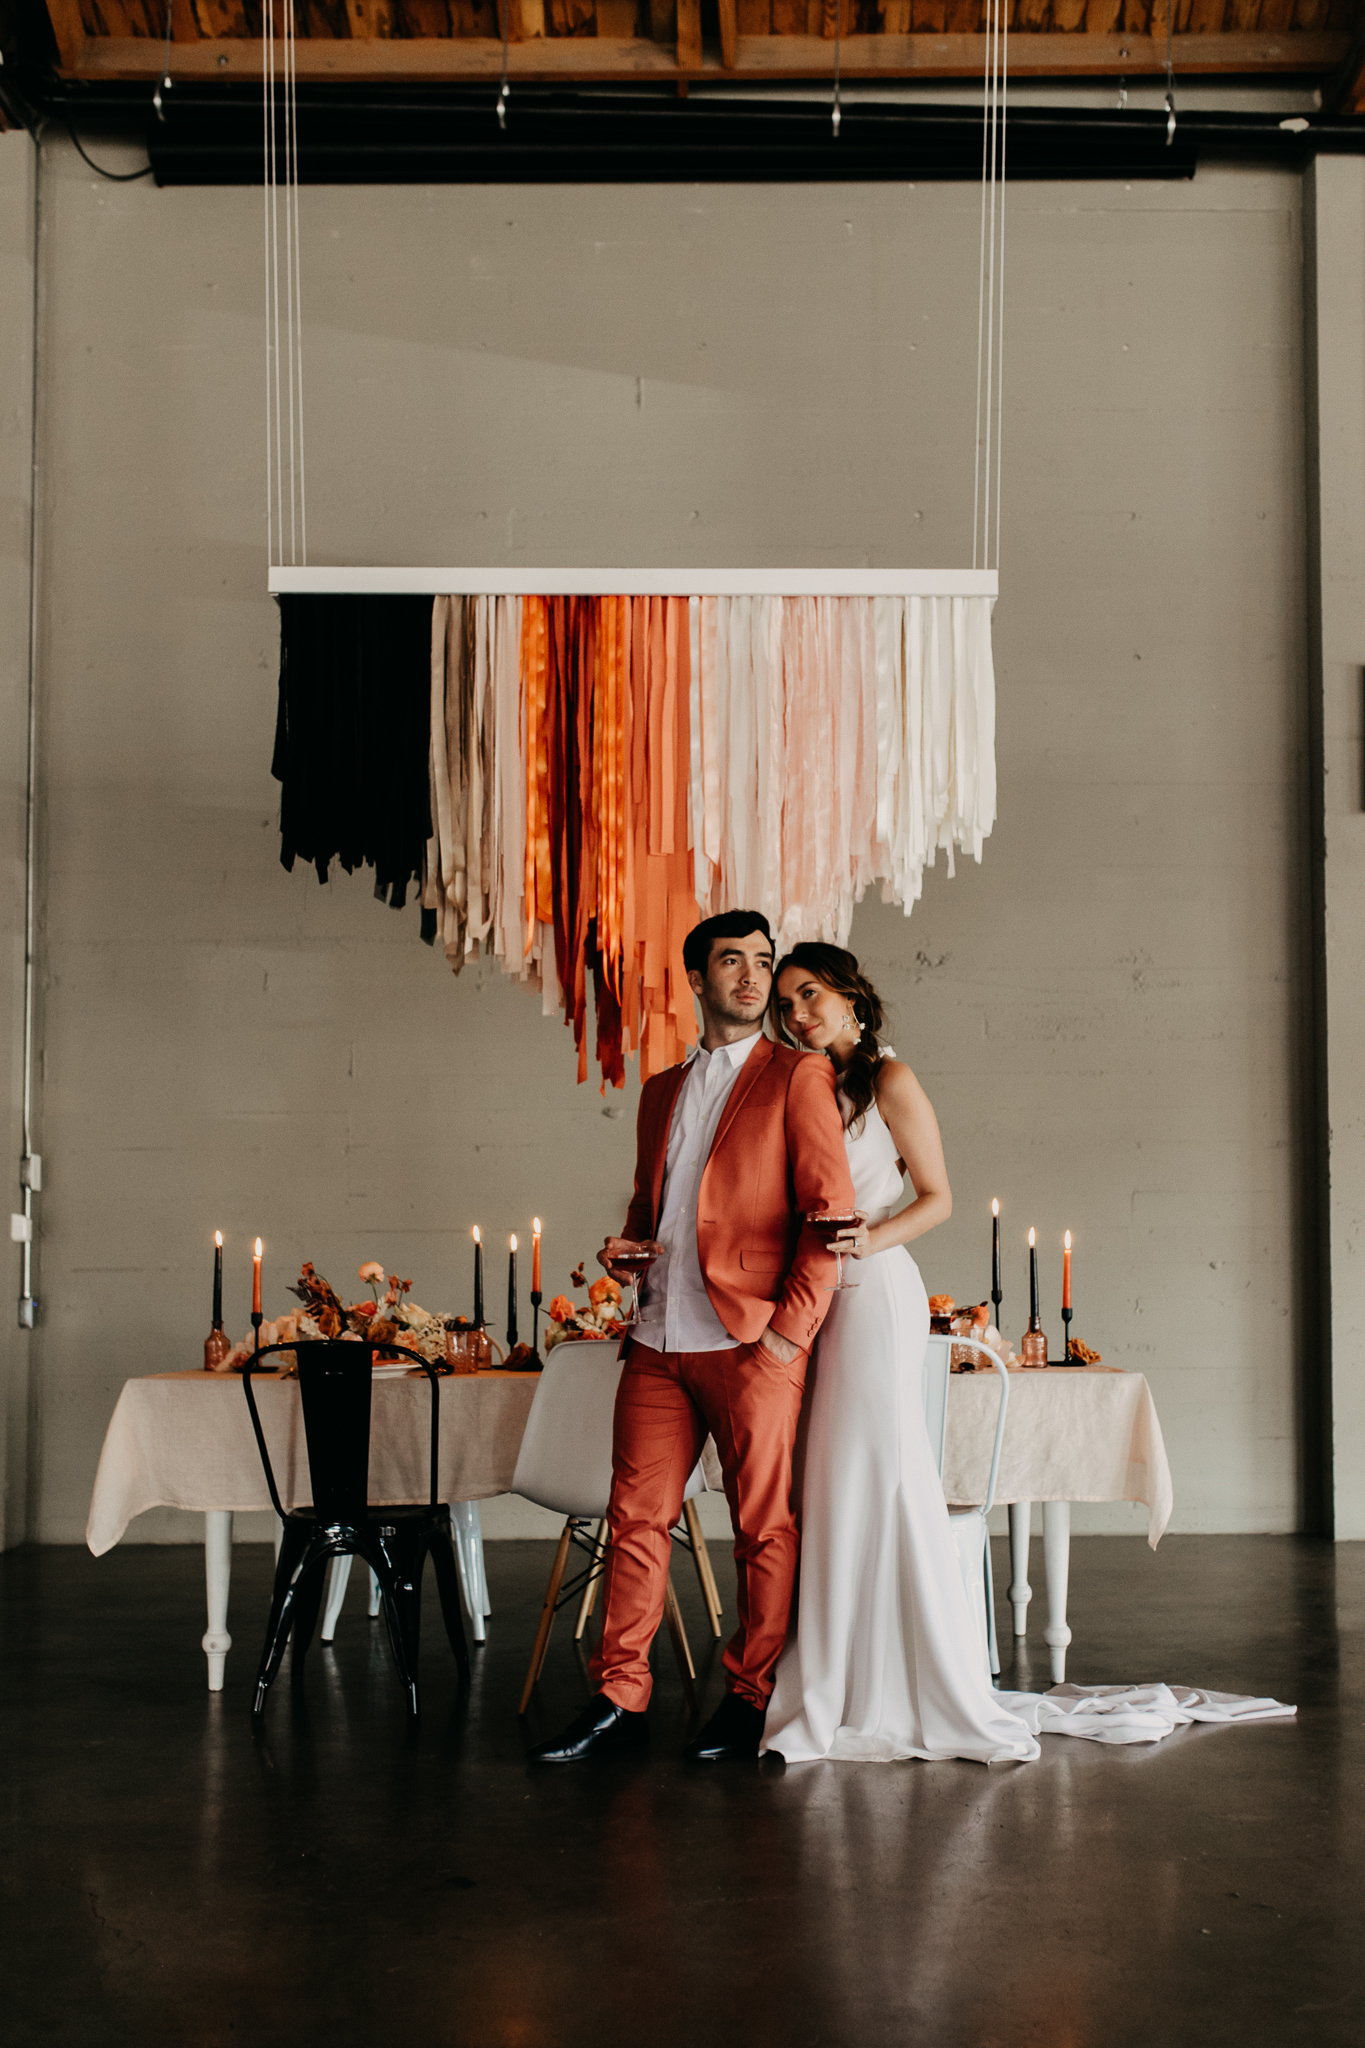 Coral-Black Themed Wedding - The eleanor, portland